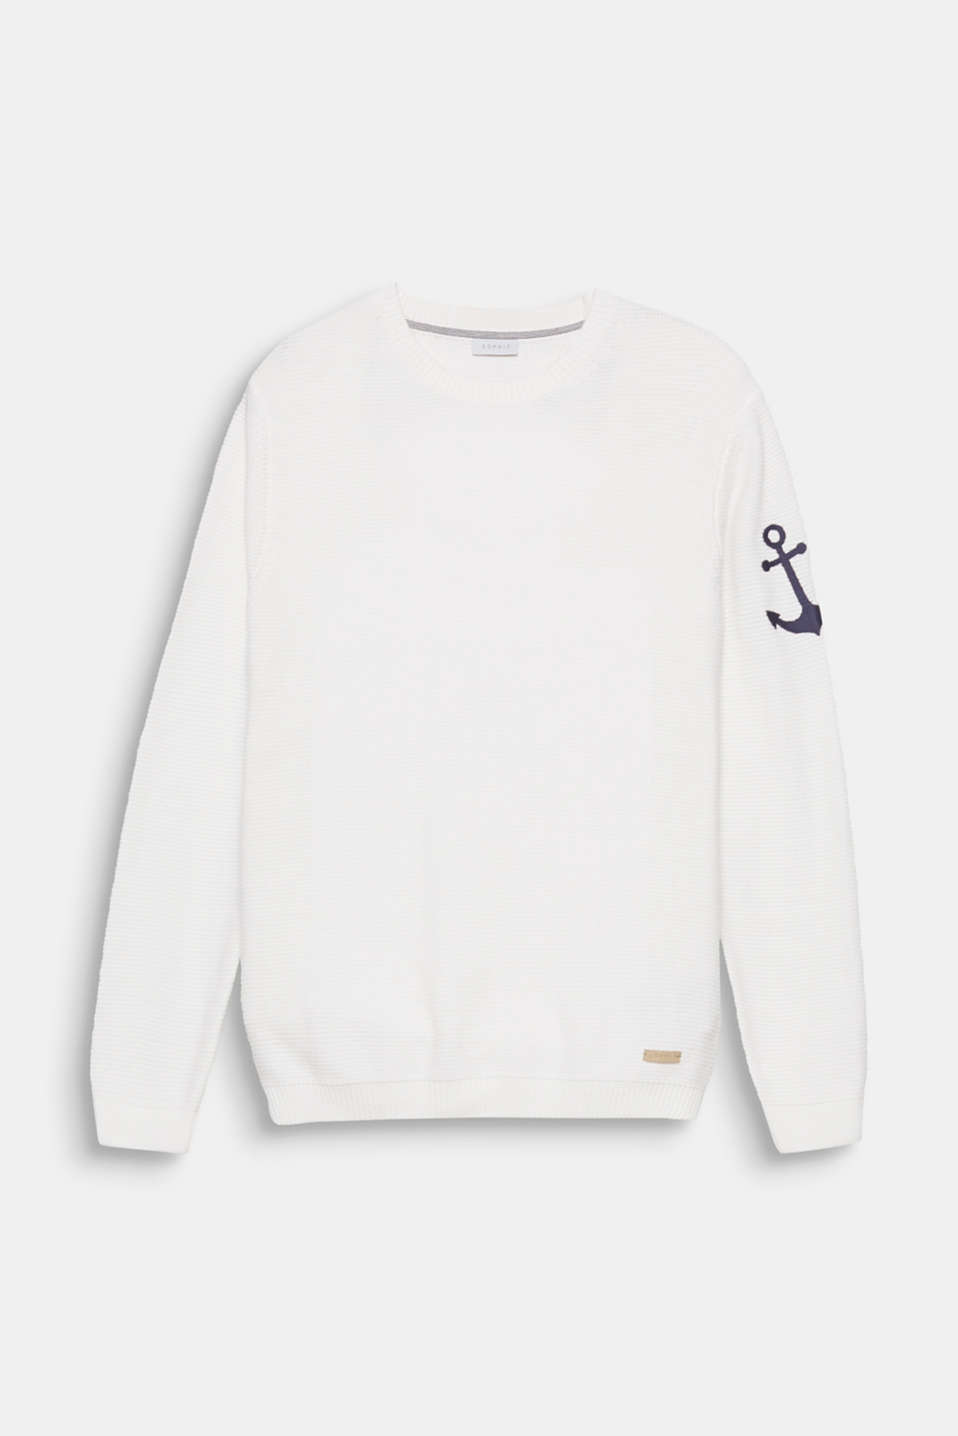 Nautical knitwear! The distinctive embroidered anchor on the left sleeve complements the nautical look.